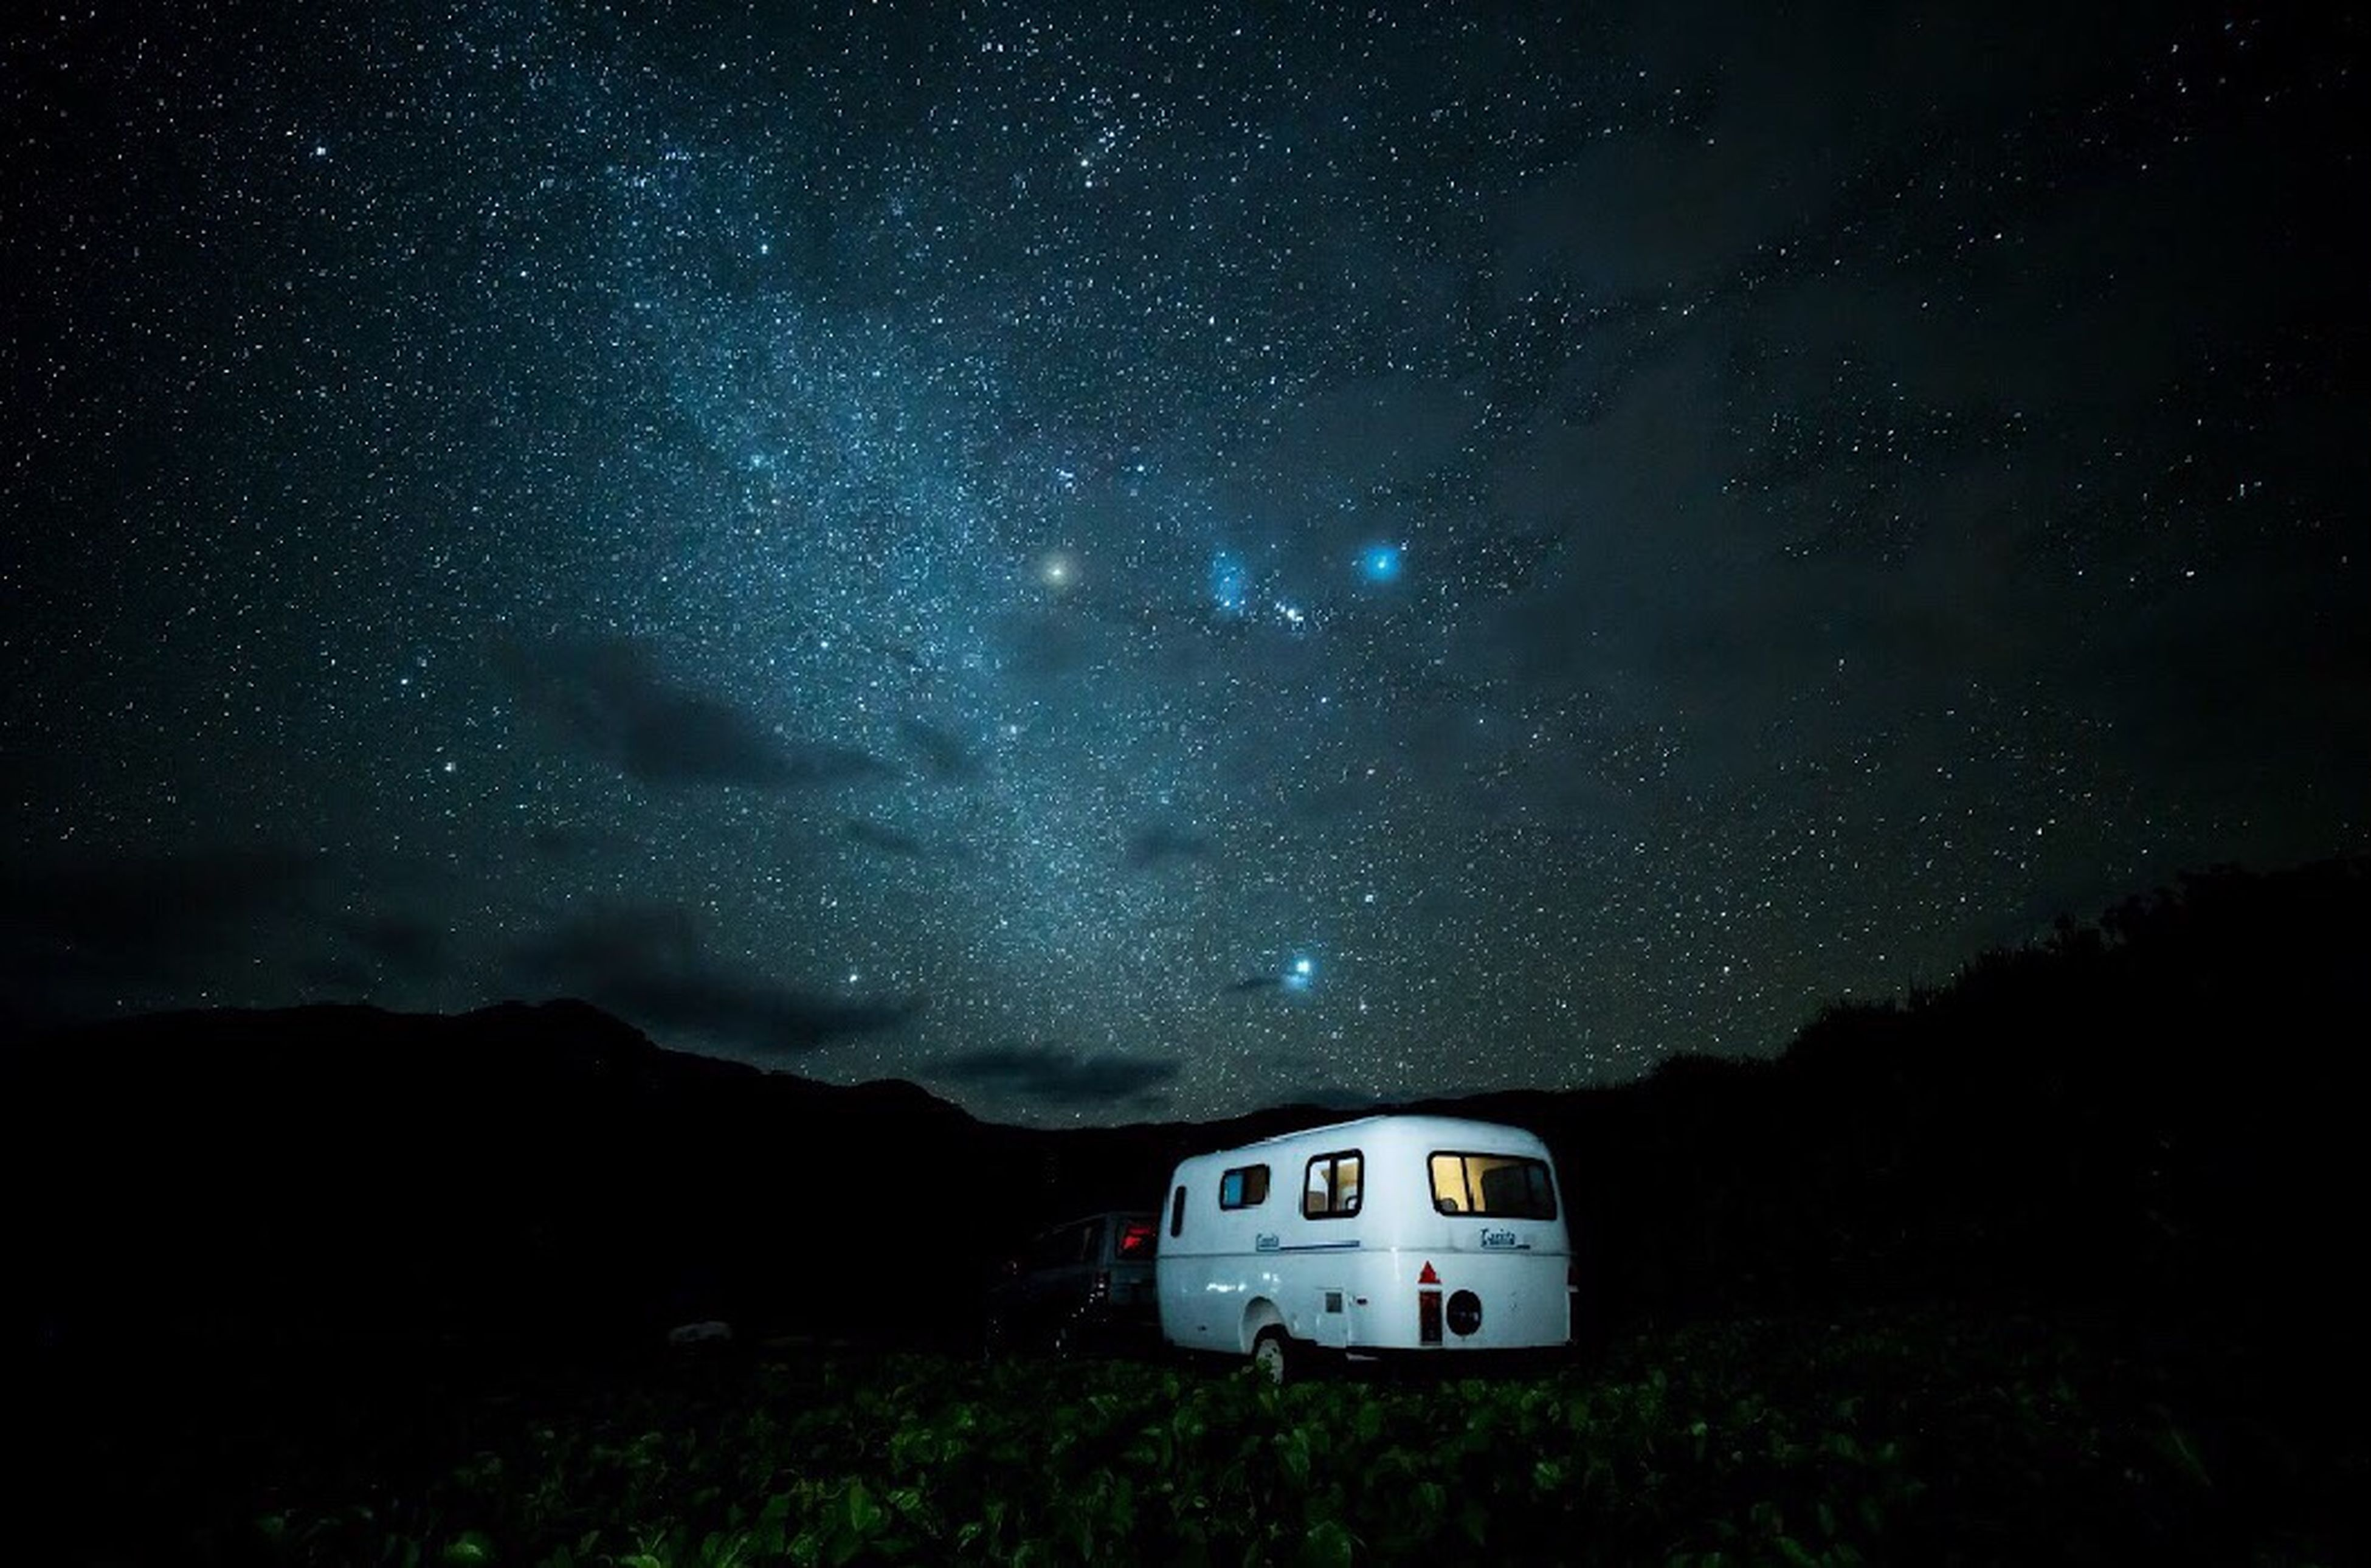 night, star - space, milky way, astronomy, space and astronomy, galaxy, sky, outdoors, no people